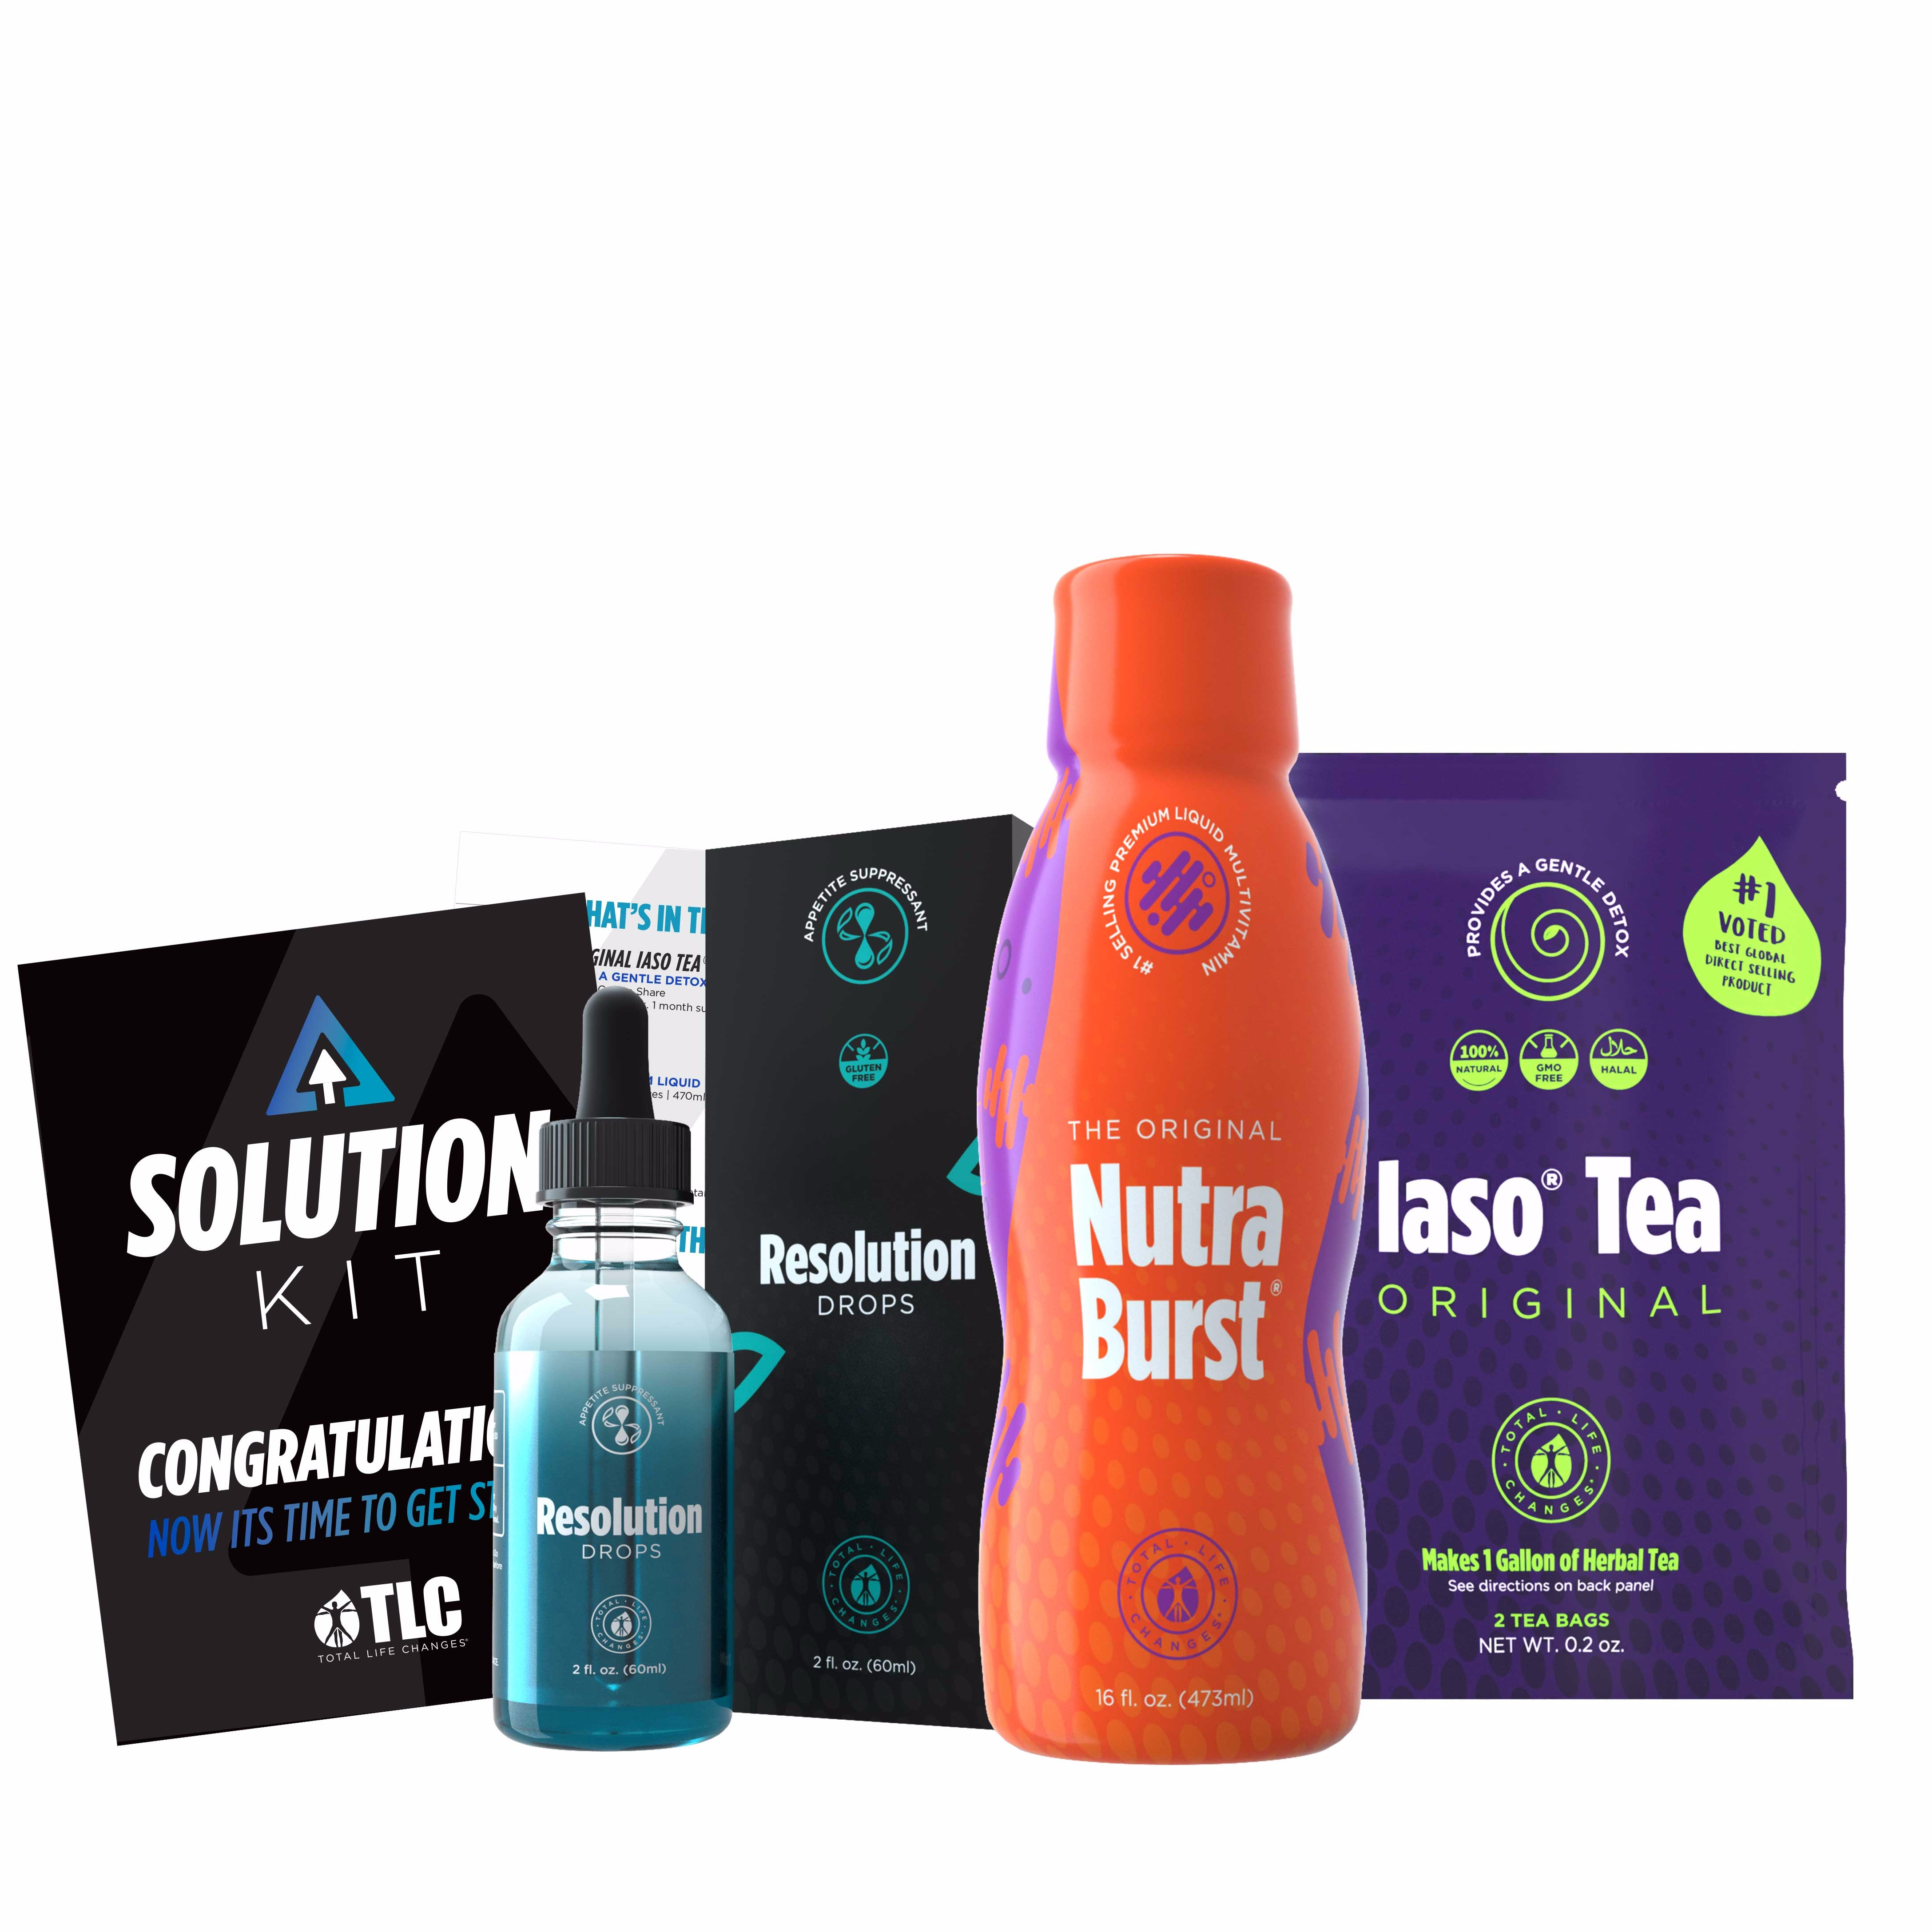 SOLUTION KIT- #1 KIT + FREE Meal Guide + Personal Coaching